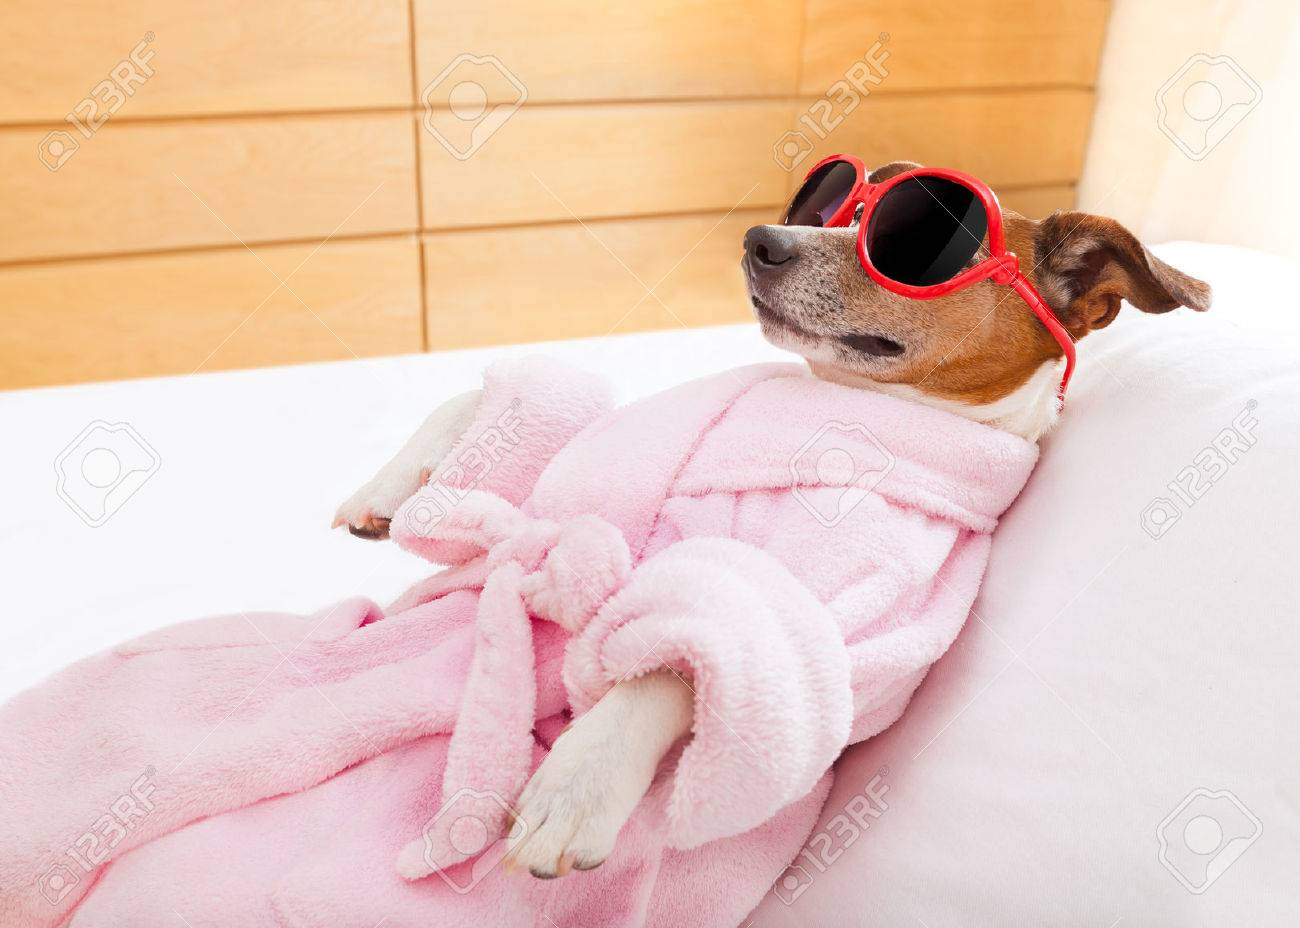 jack russell dog relaxing  and lying, in   spa wellness center ,wearing a  bathrobe and funny sunglasses Stock Photo - 41763465